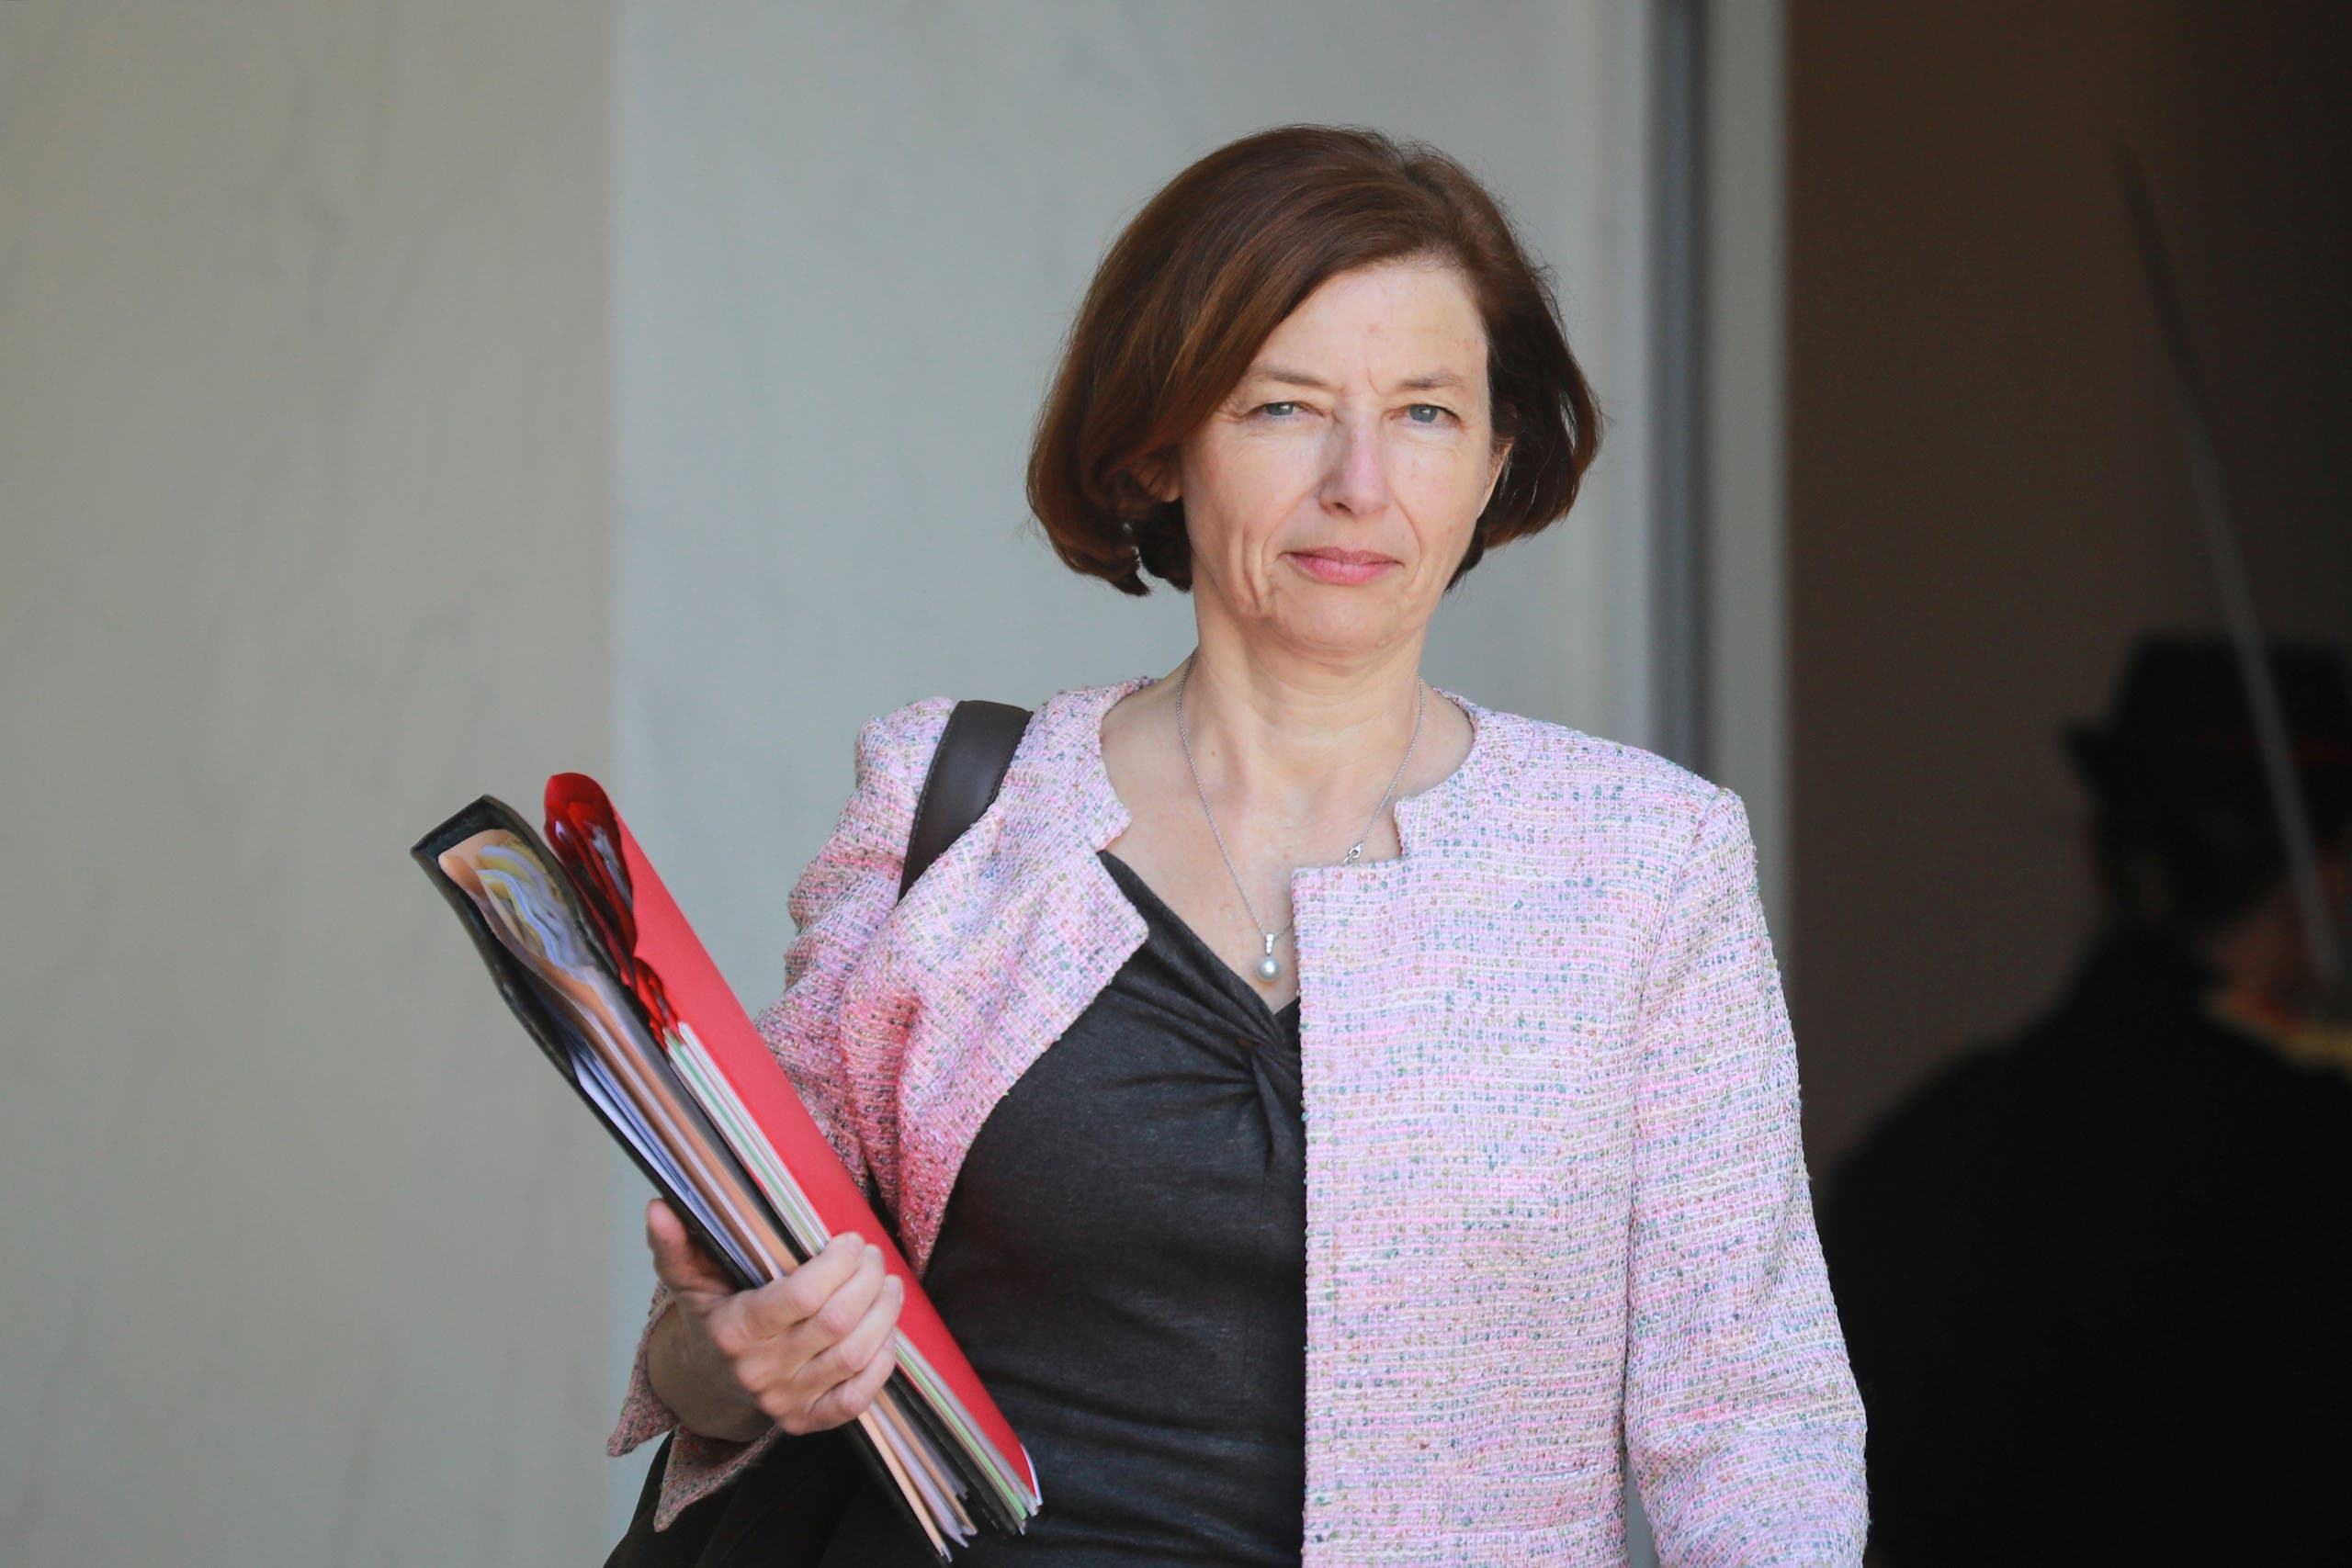 French Defence Minister Florence Parly leaves the Elysee Presidential Palace after a weekly cabinet meeting, in Paris, France May 27, 2020 as France eases lockdown measures taken to curb the spread of the coronavirus disease (COVID-19). (Reuters)